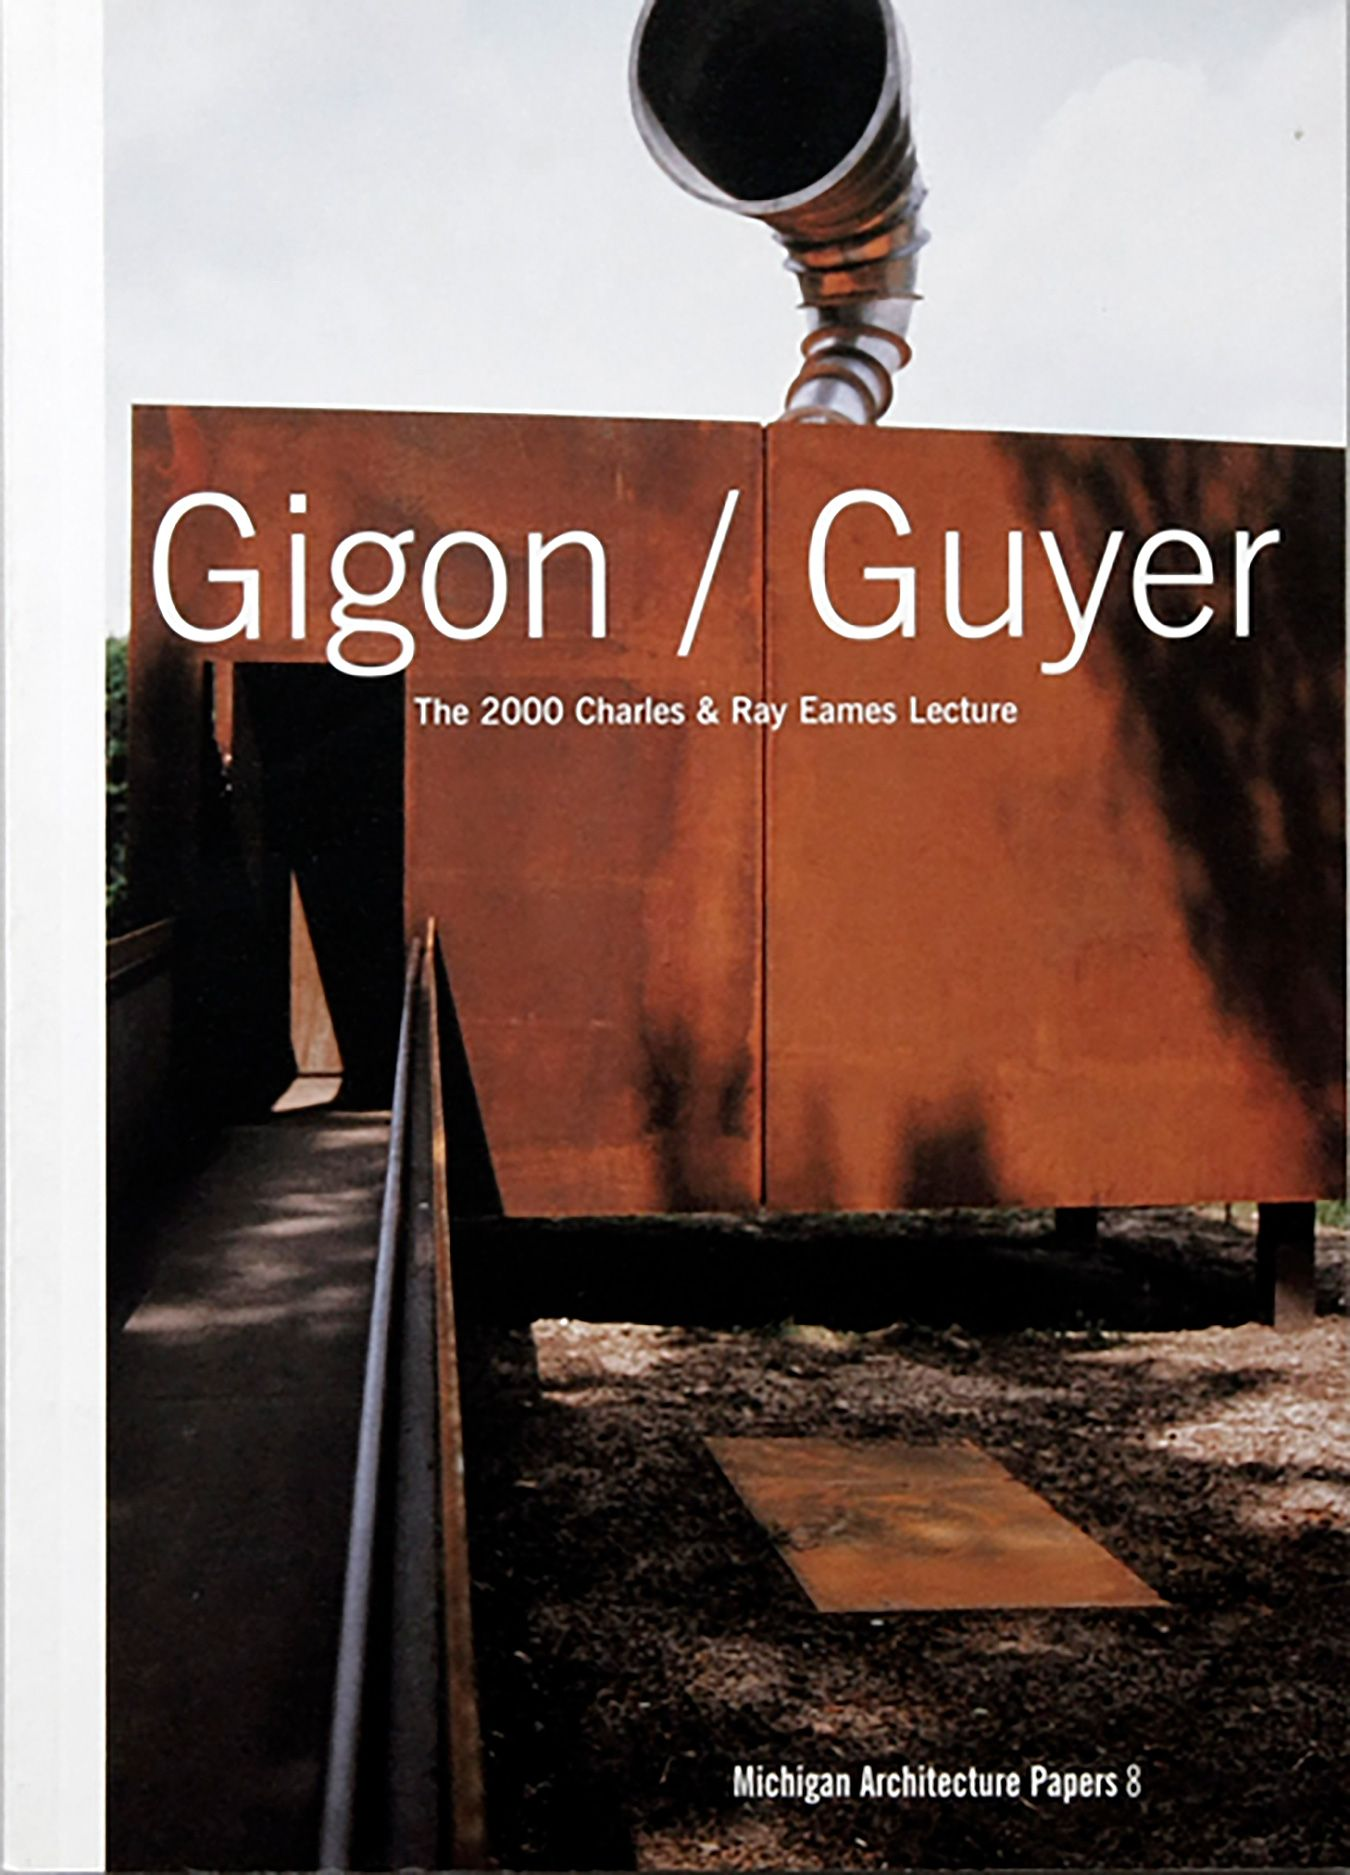 Gigon/Guyer. The 2000 Charles & Ray Eames Lecture